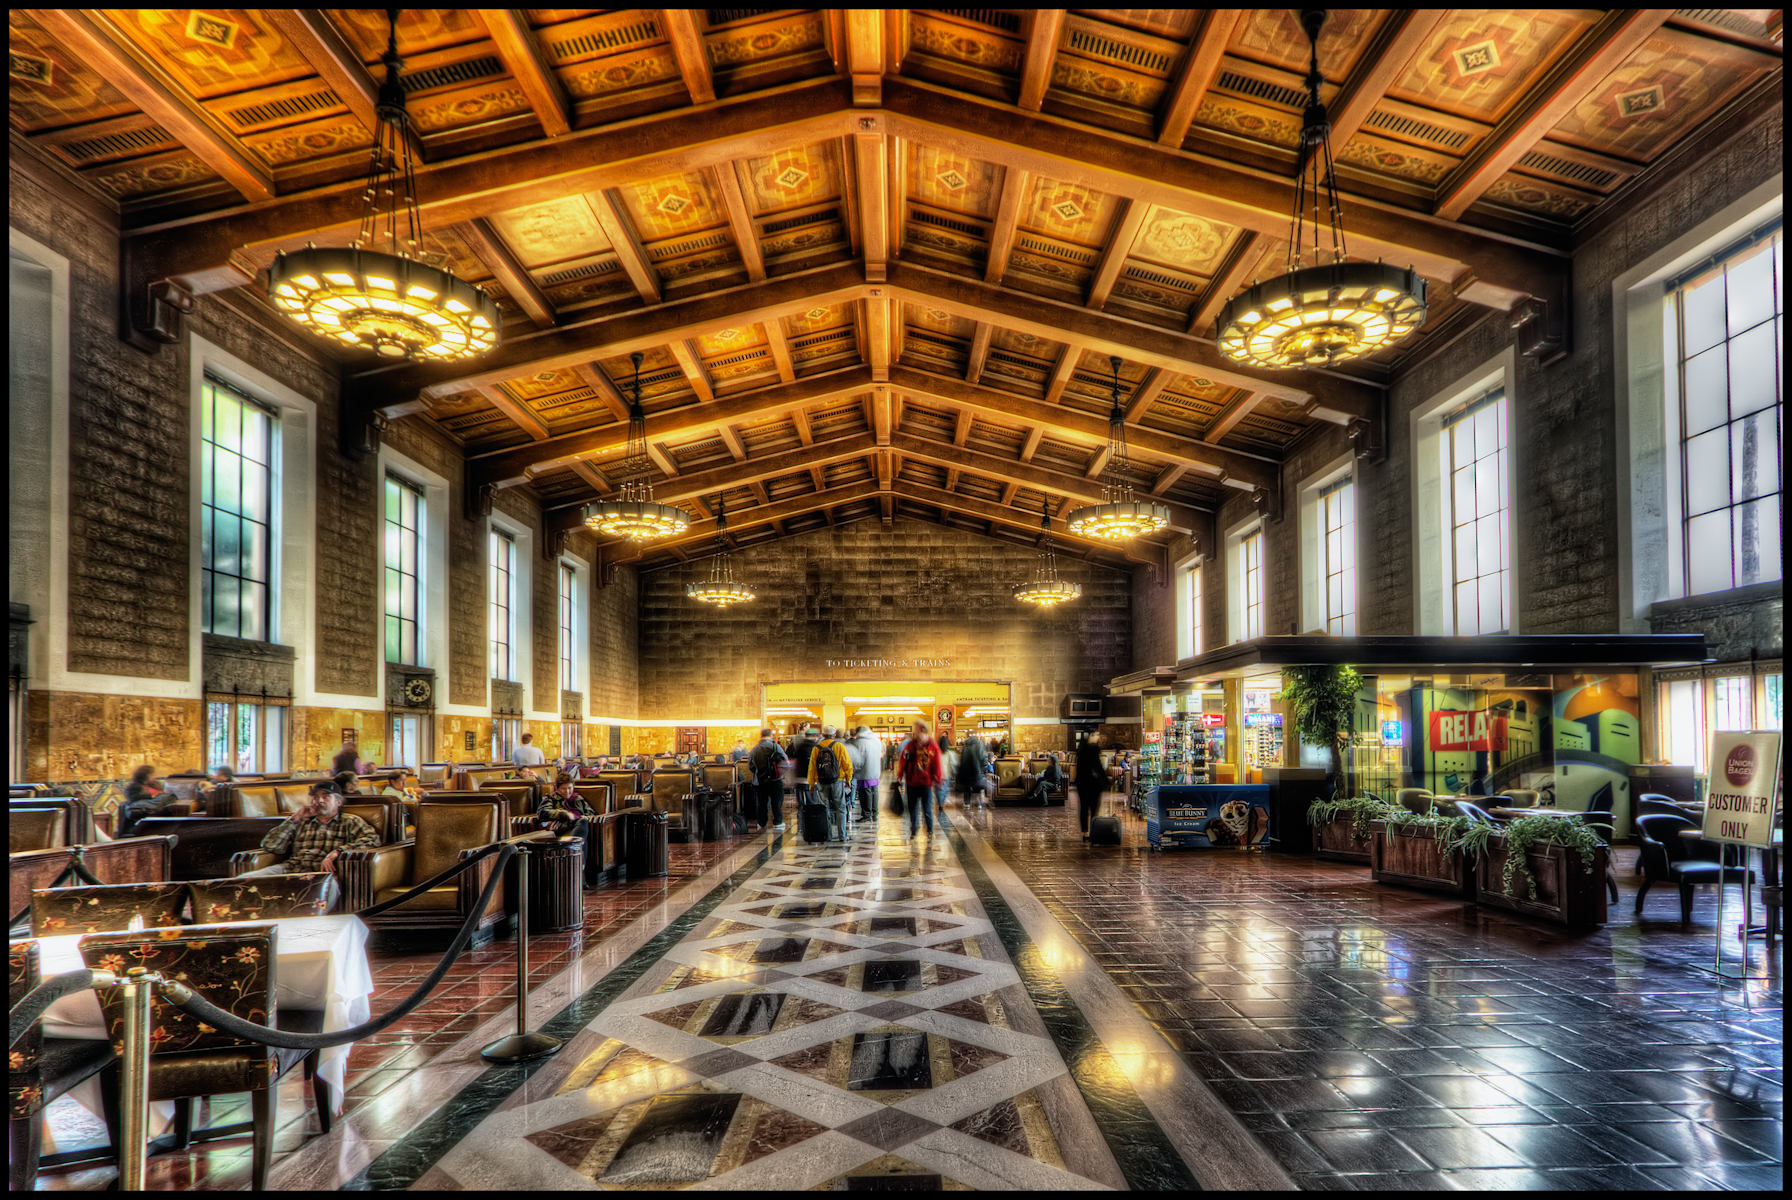 Los Angeles Union Station Flickr Photo Sharing